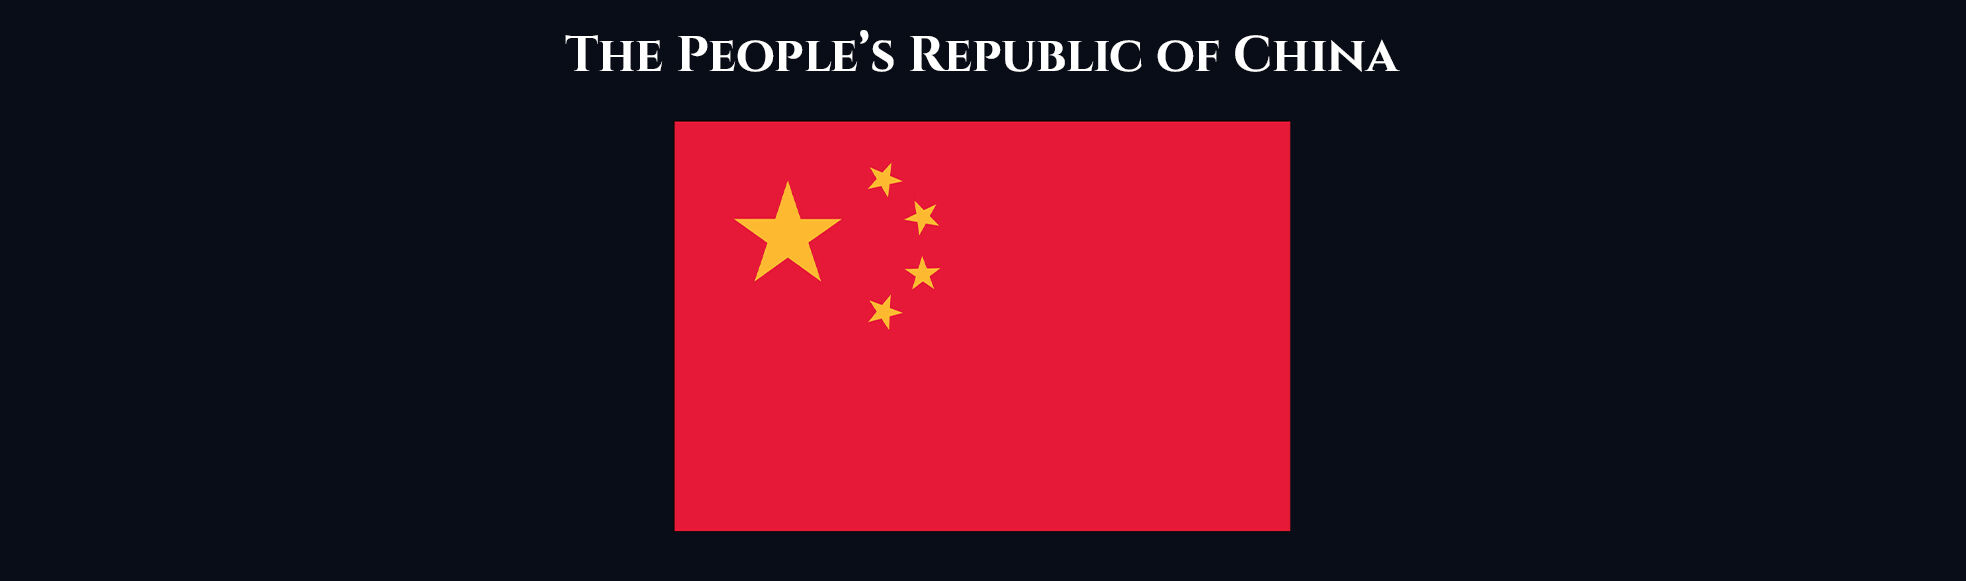 Absent Justice - The Peoples Republic of China